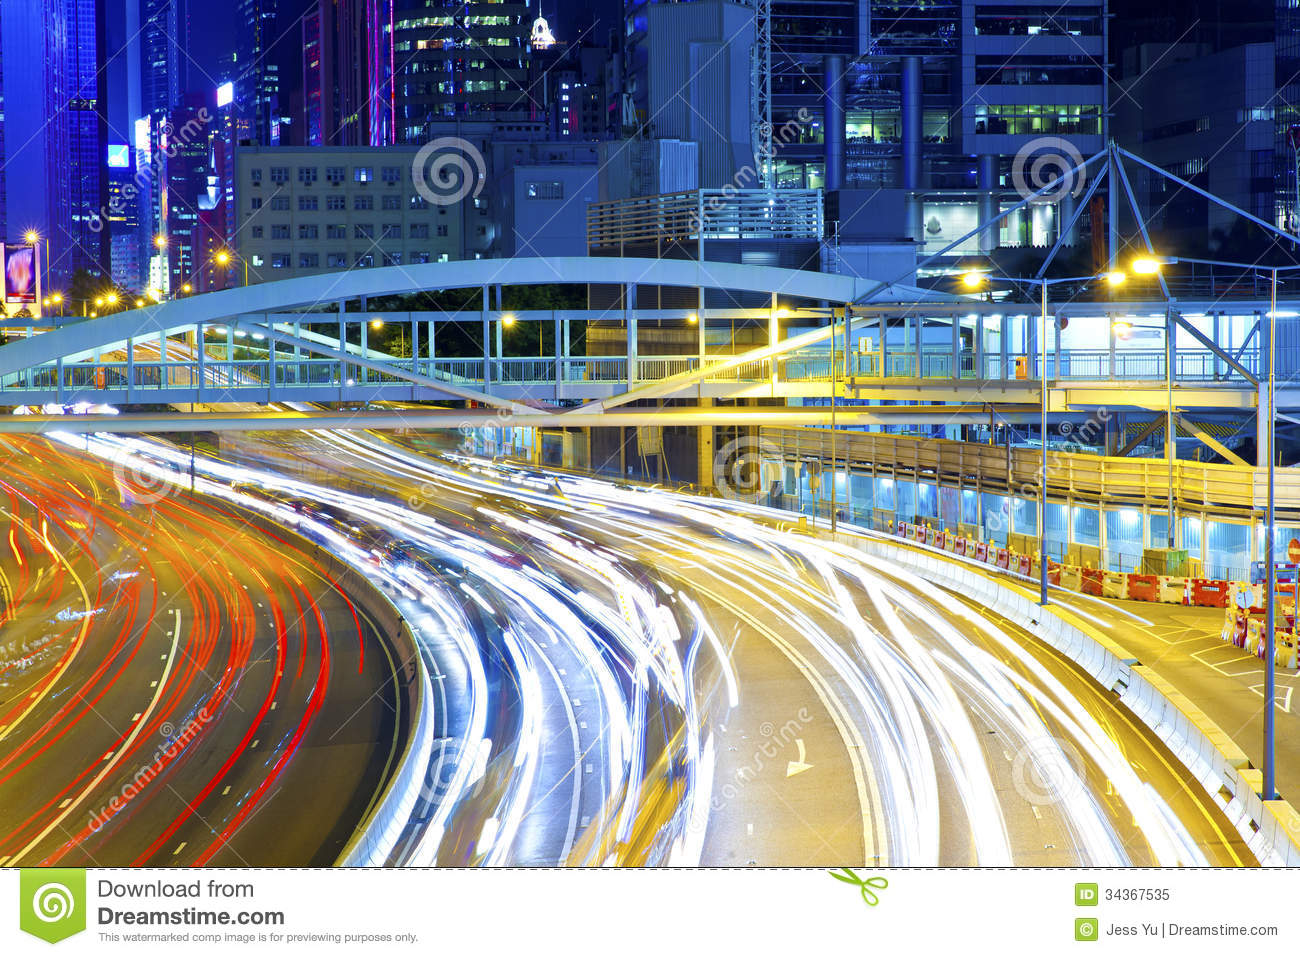 Traffic Light Curving Lines On Road During Rush Hour Stock Image ... for Traffic Light On Road At Night  67qdu